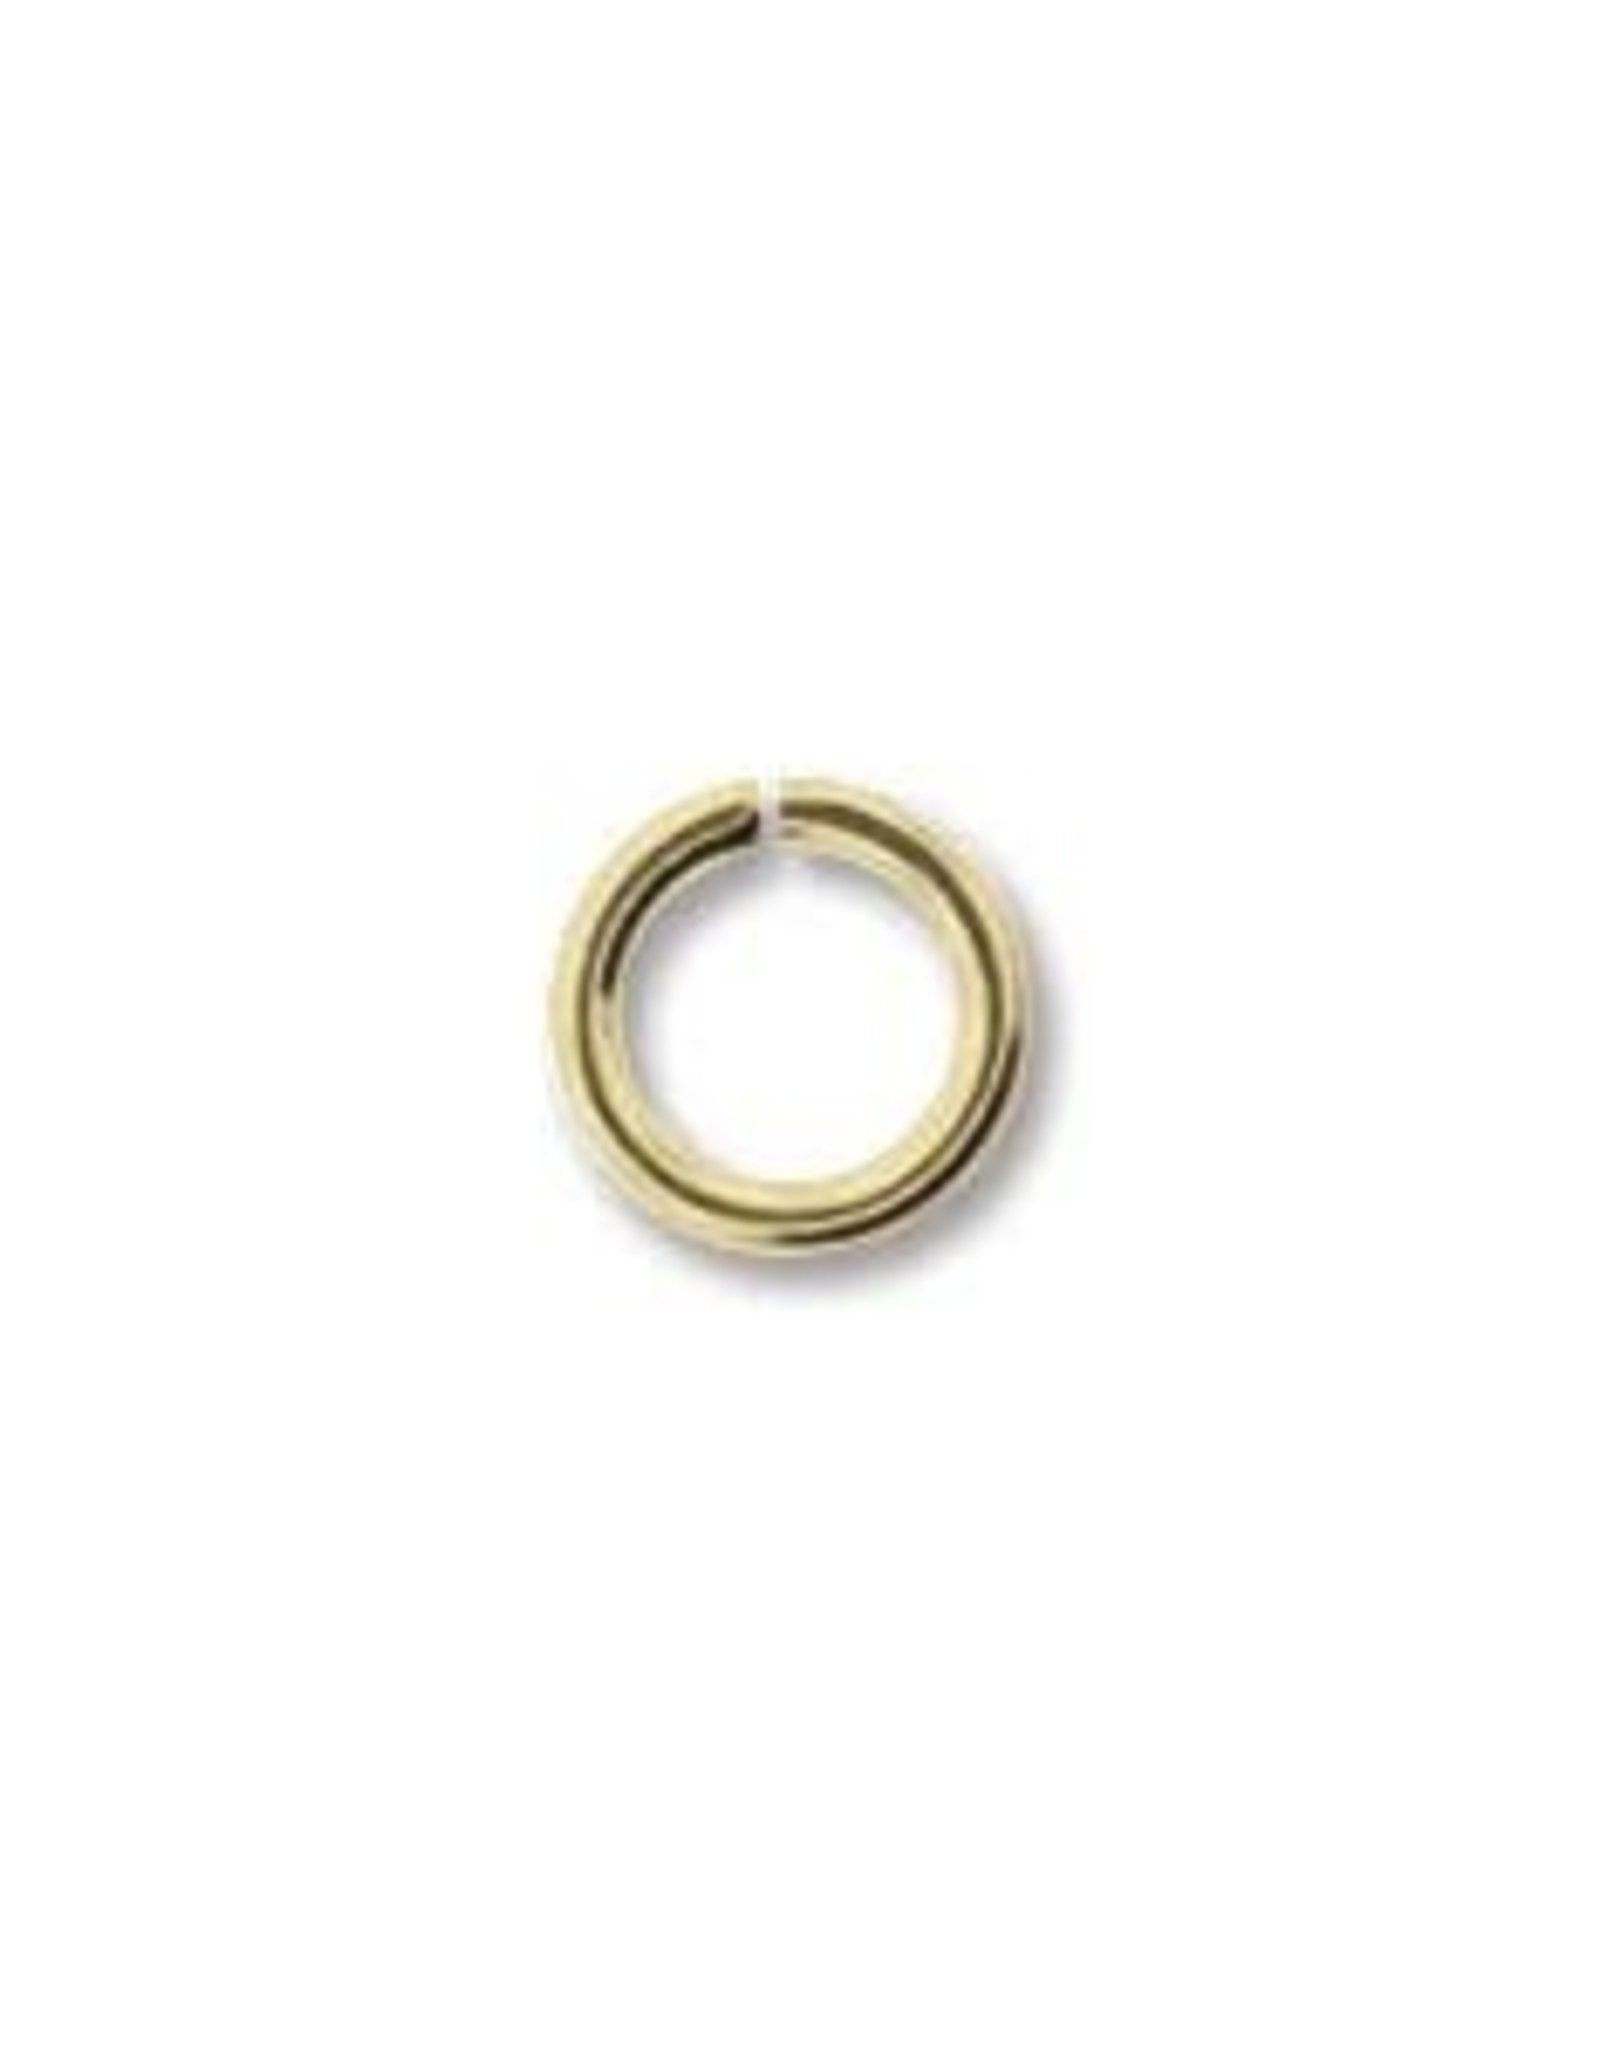 6mm Jump Ring 18ga Gold Plate Qty 144